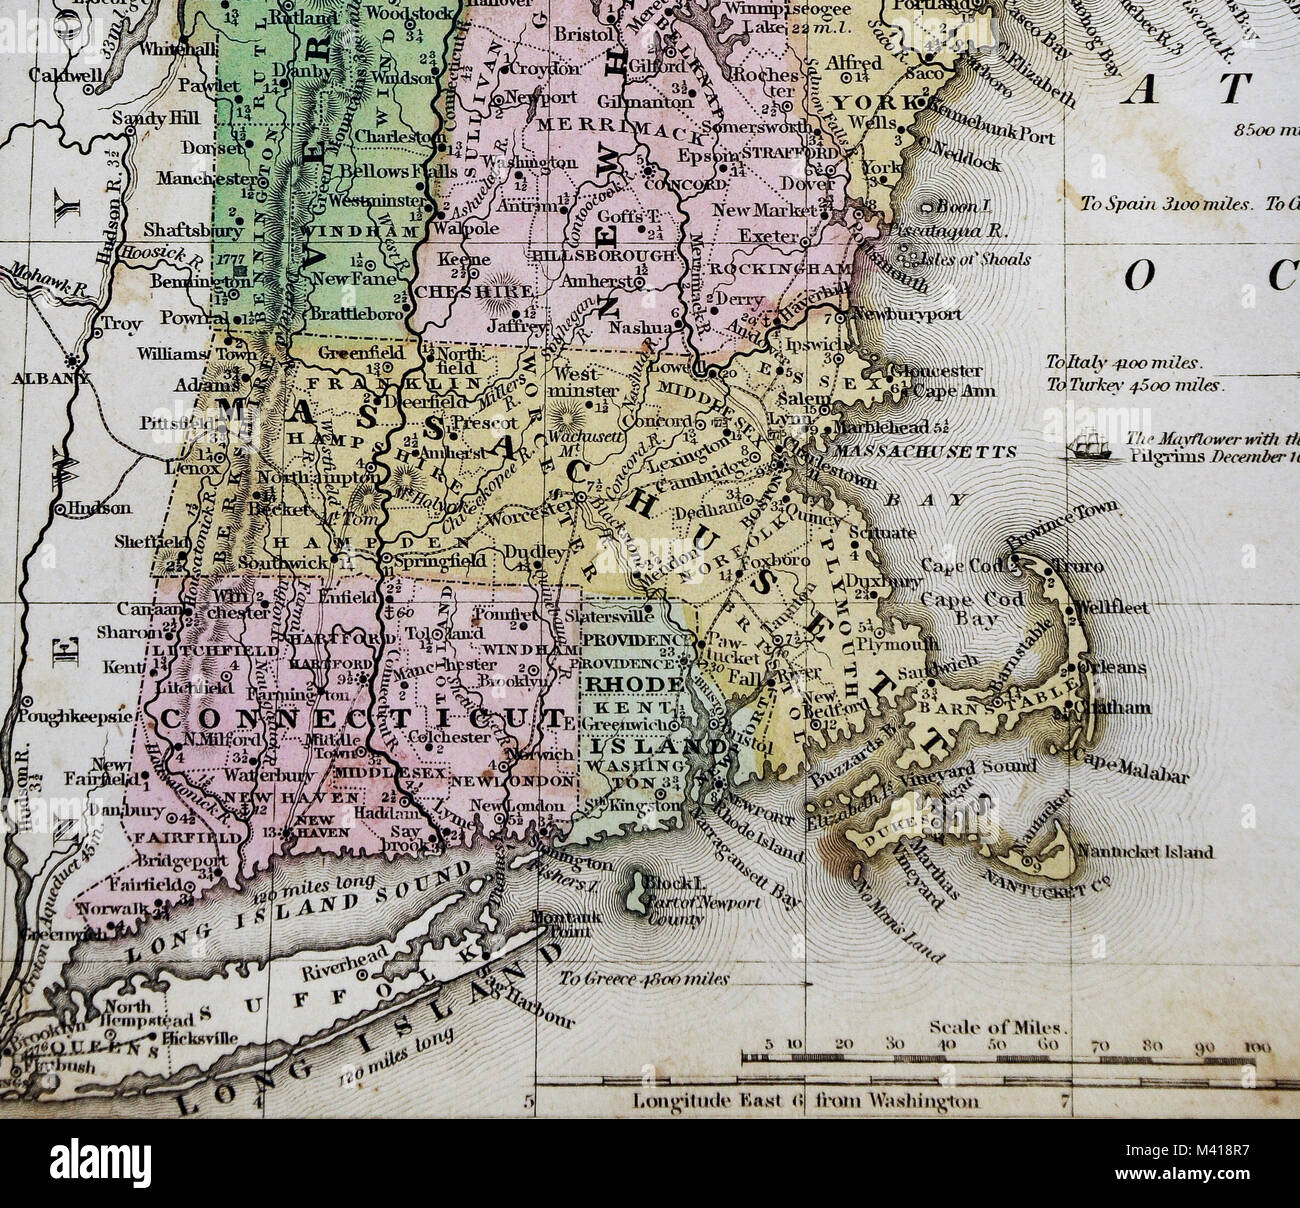 Fixing Up An Old New Englander In Maine: Old Map Of Boston Stock Photos & Old Map Of Boston Stock